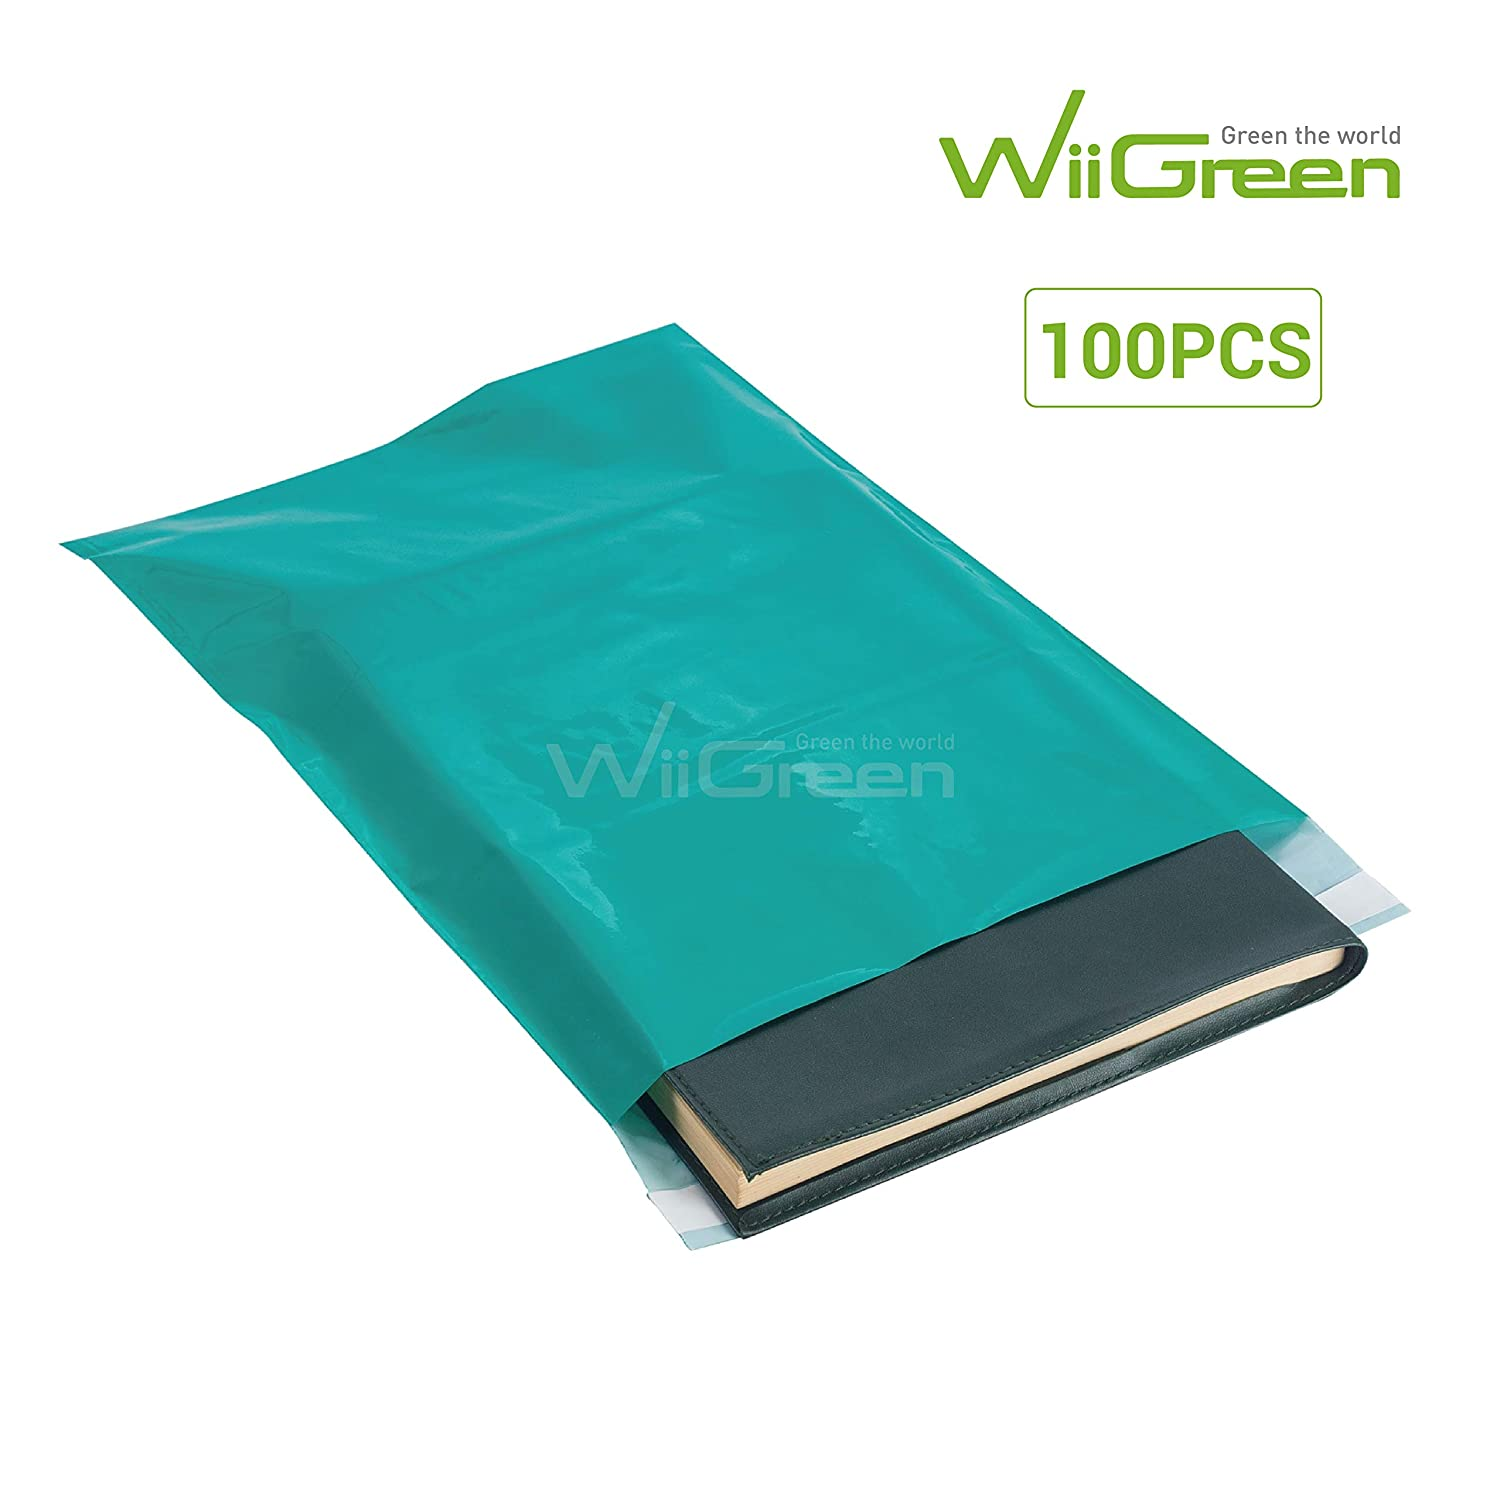 White WiiGreen #4 300 PCS 11x15x2MIL Poly Mailers Shipping Envelopes Packaging Bags Enhanced Durability Multipurpose Postal Gift Bags with Self Adhesive Waterproof and Tear-Proof